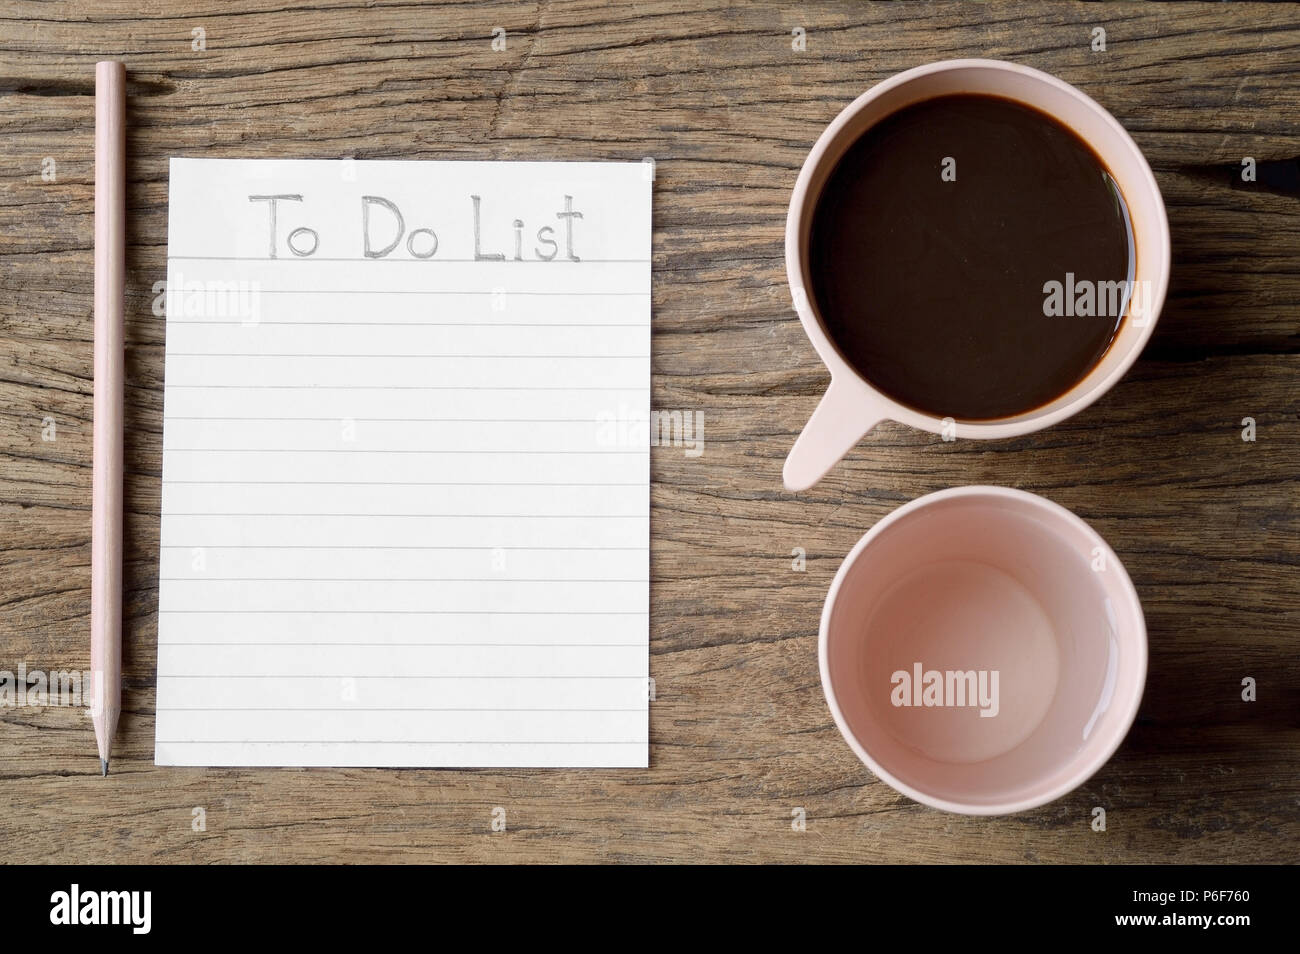 to do list word on wooden table with coffee cup drinking water and